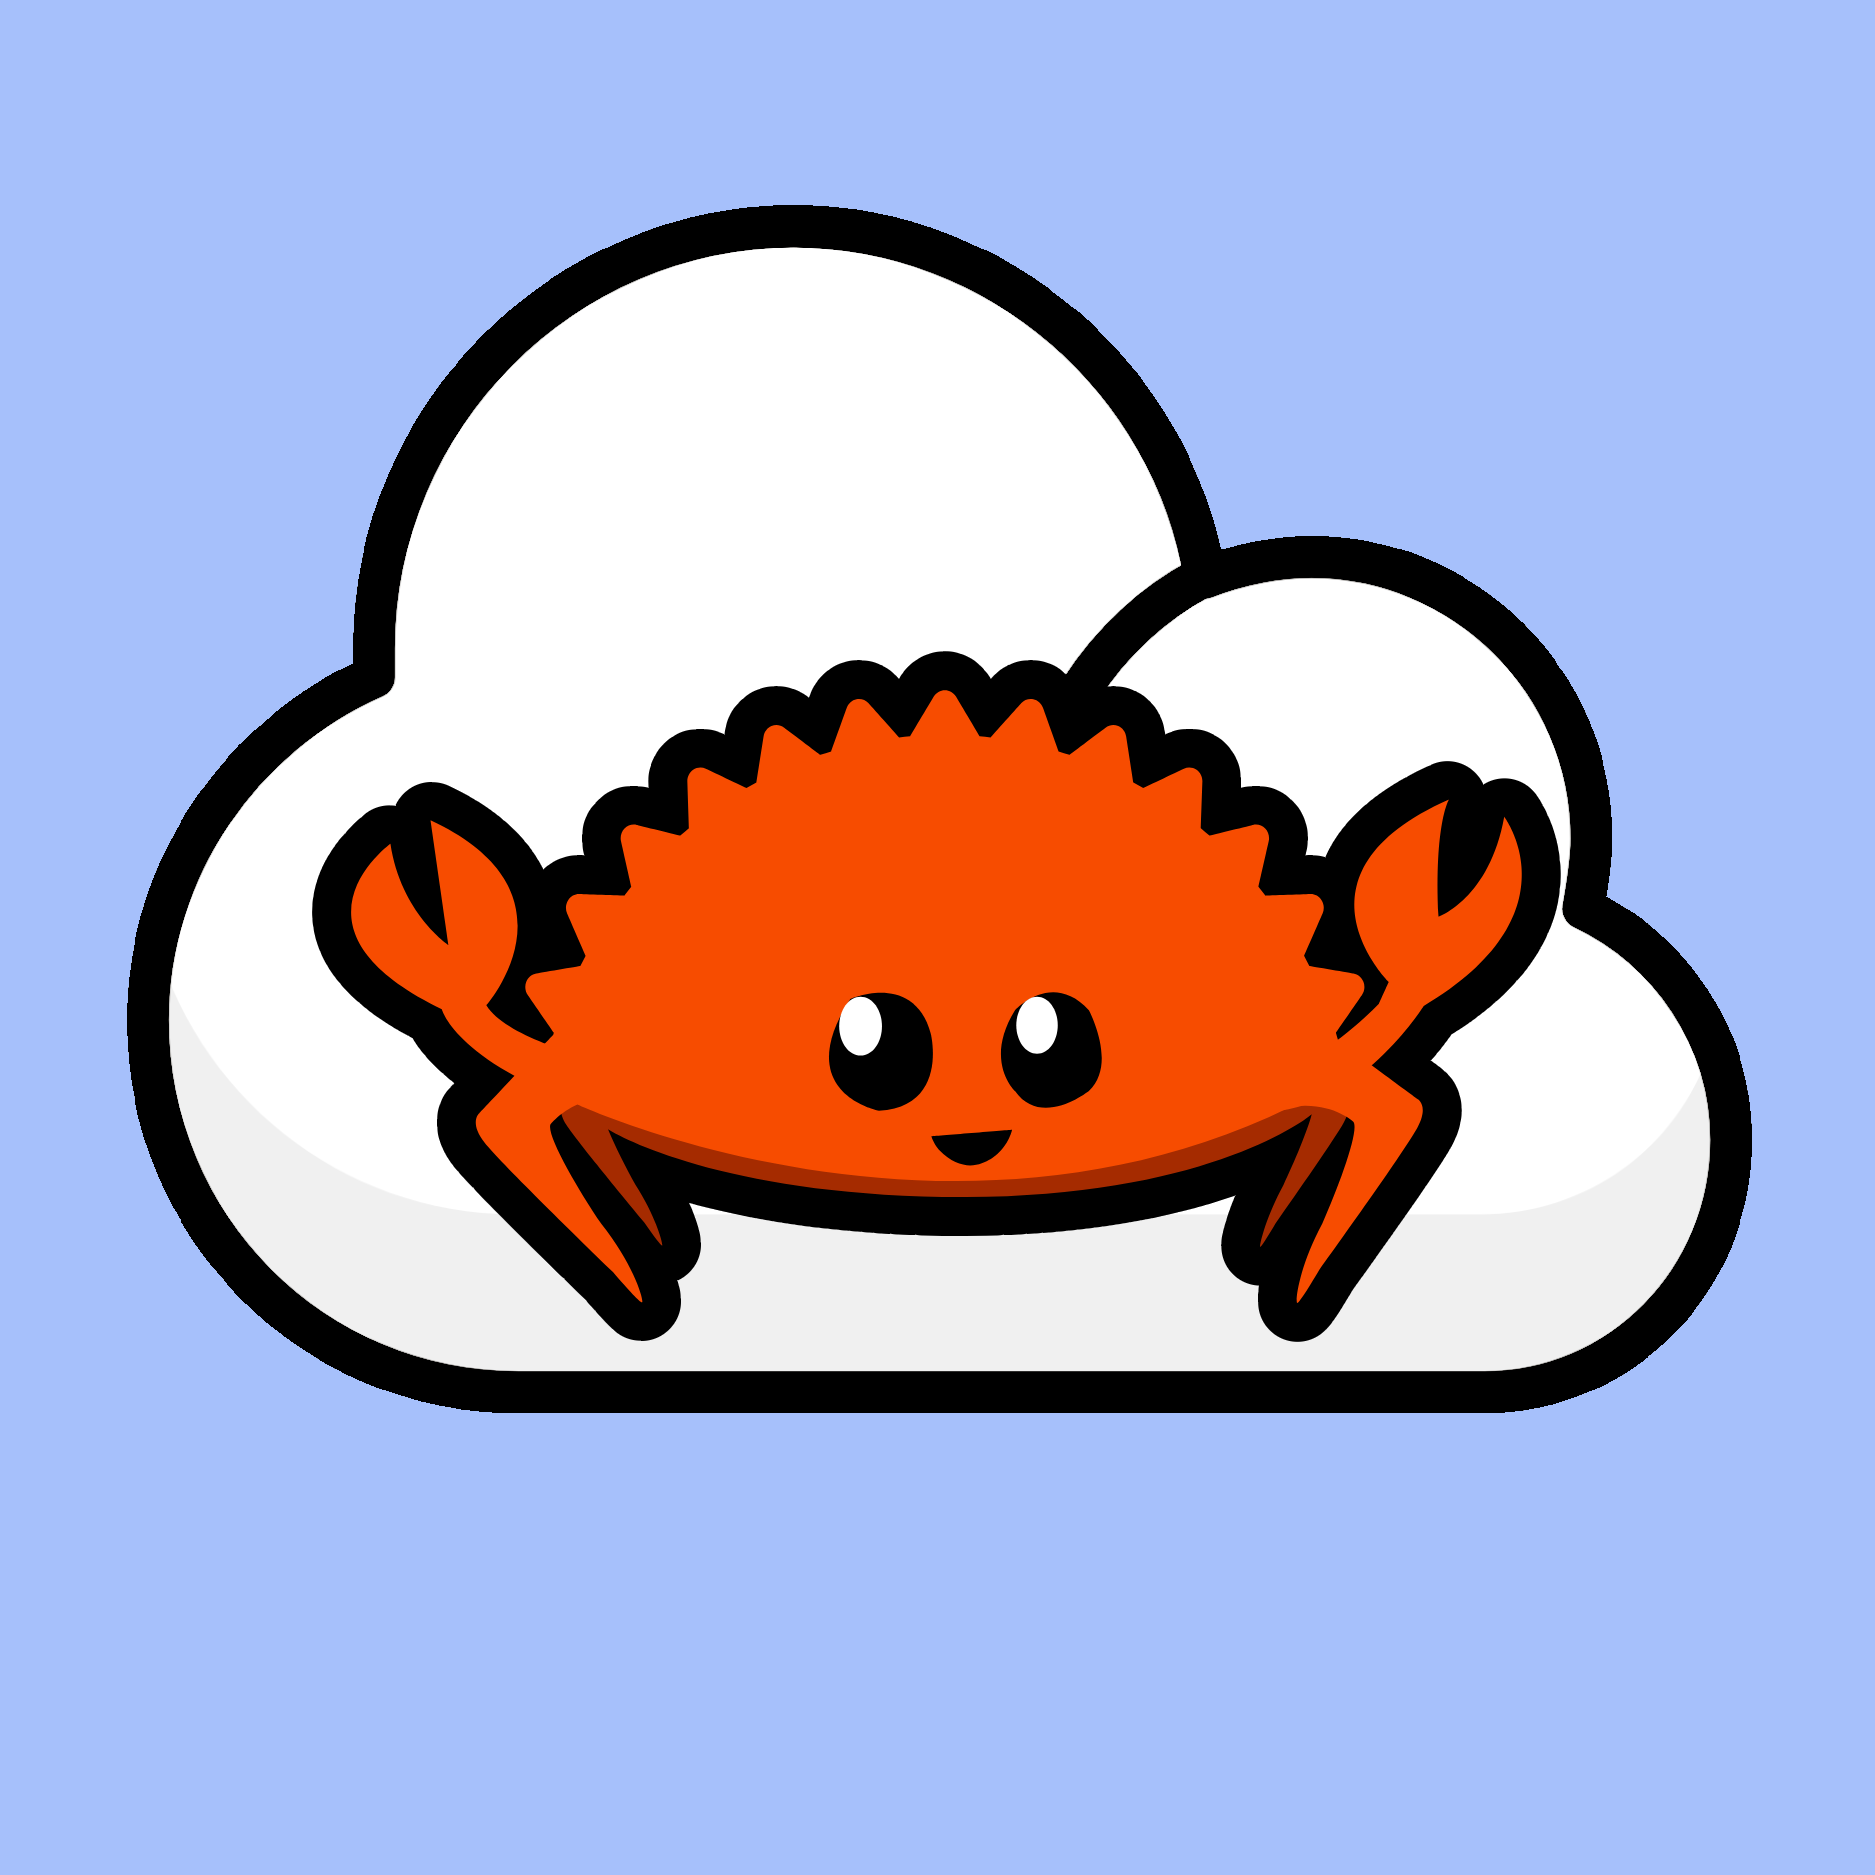 Rust Cloud Native logo, which features the Ferris crab mascot on a white cloud with a light blue background.